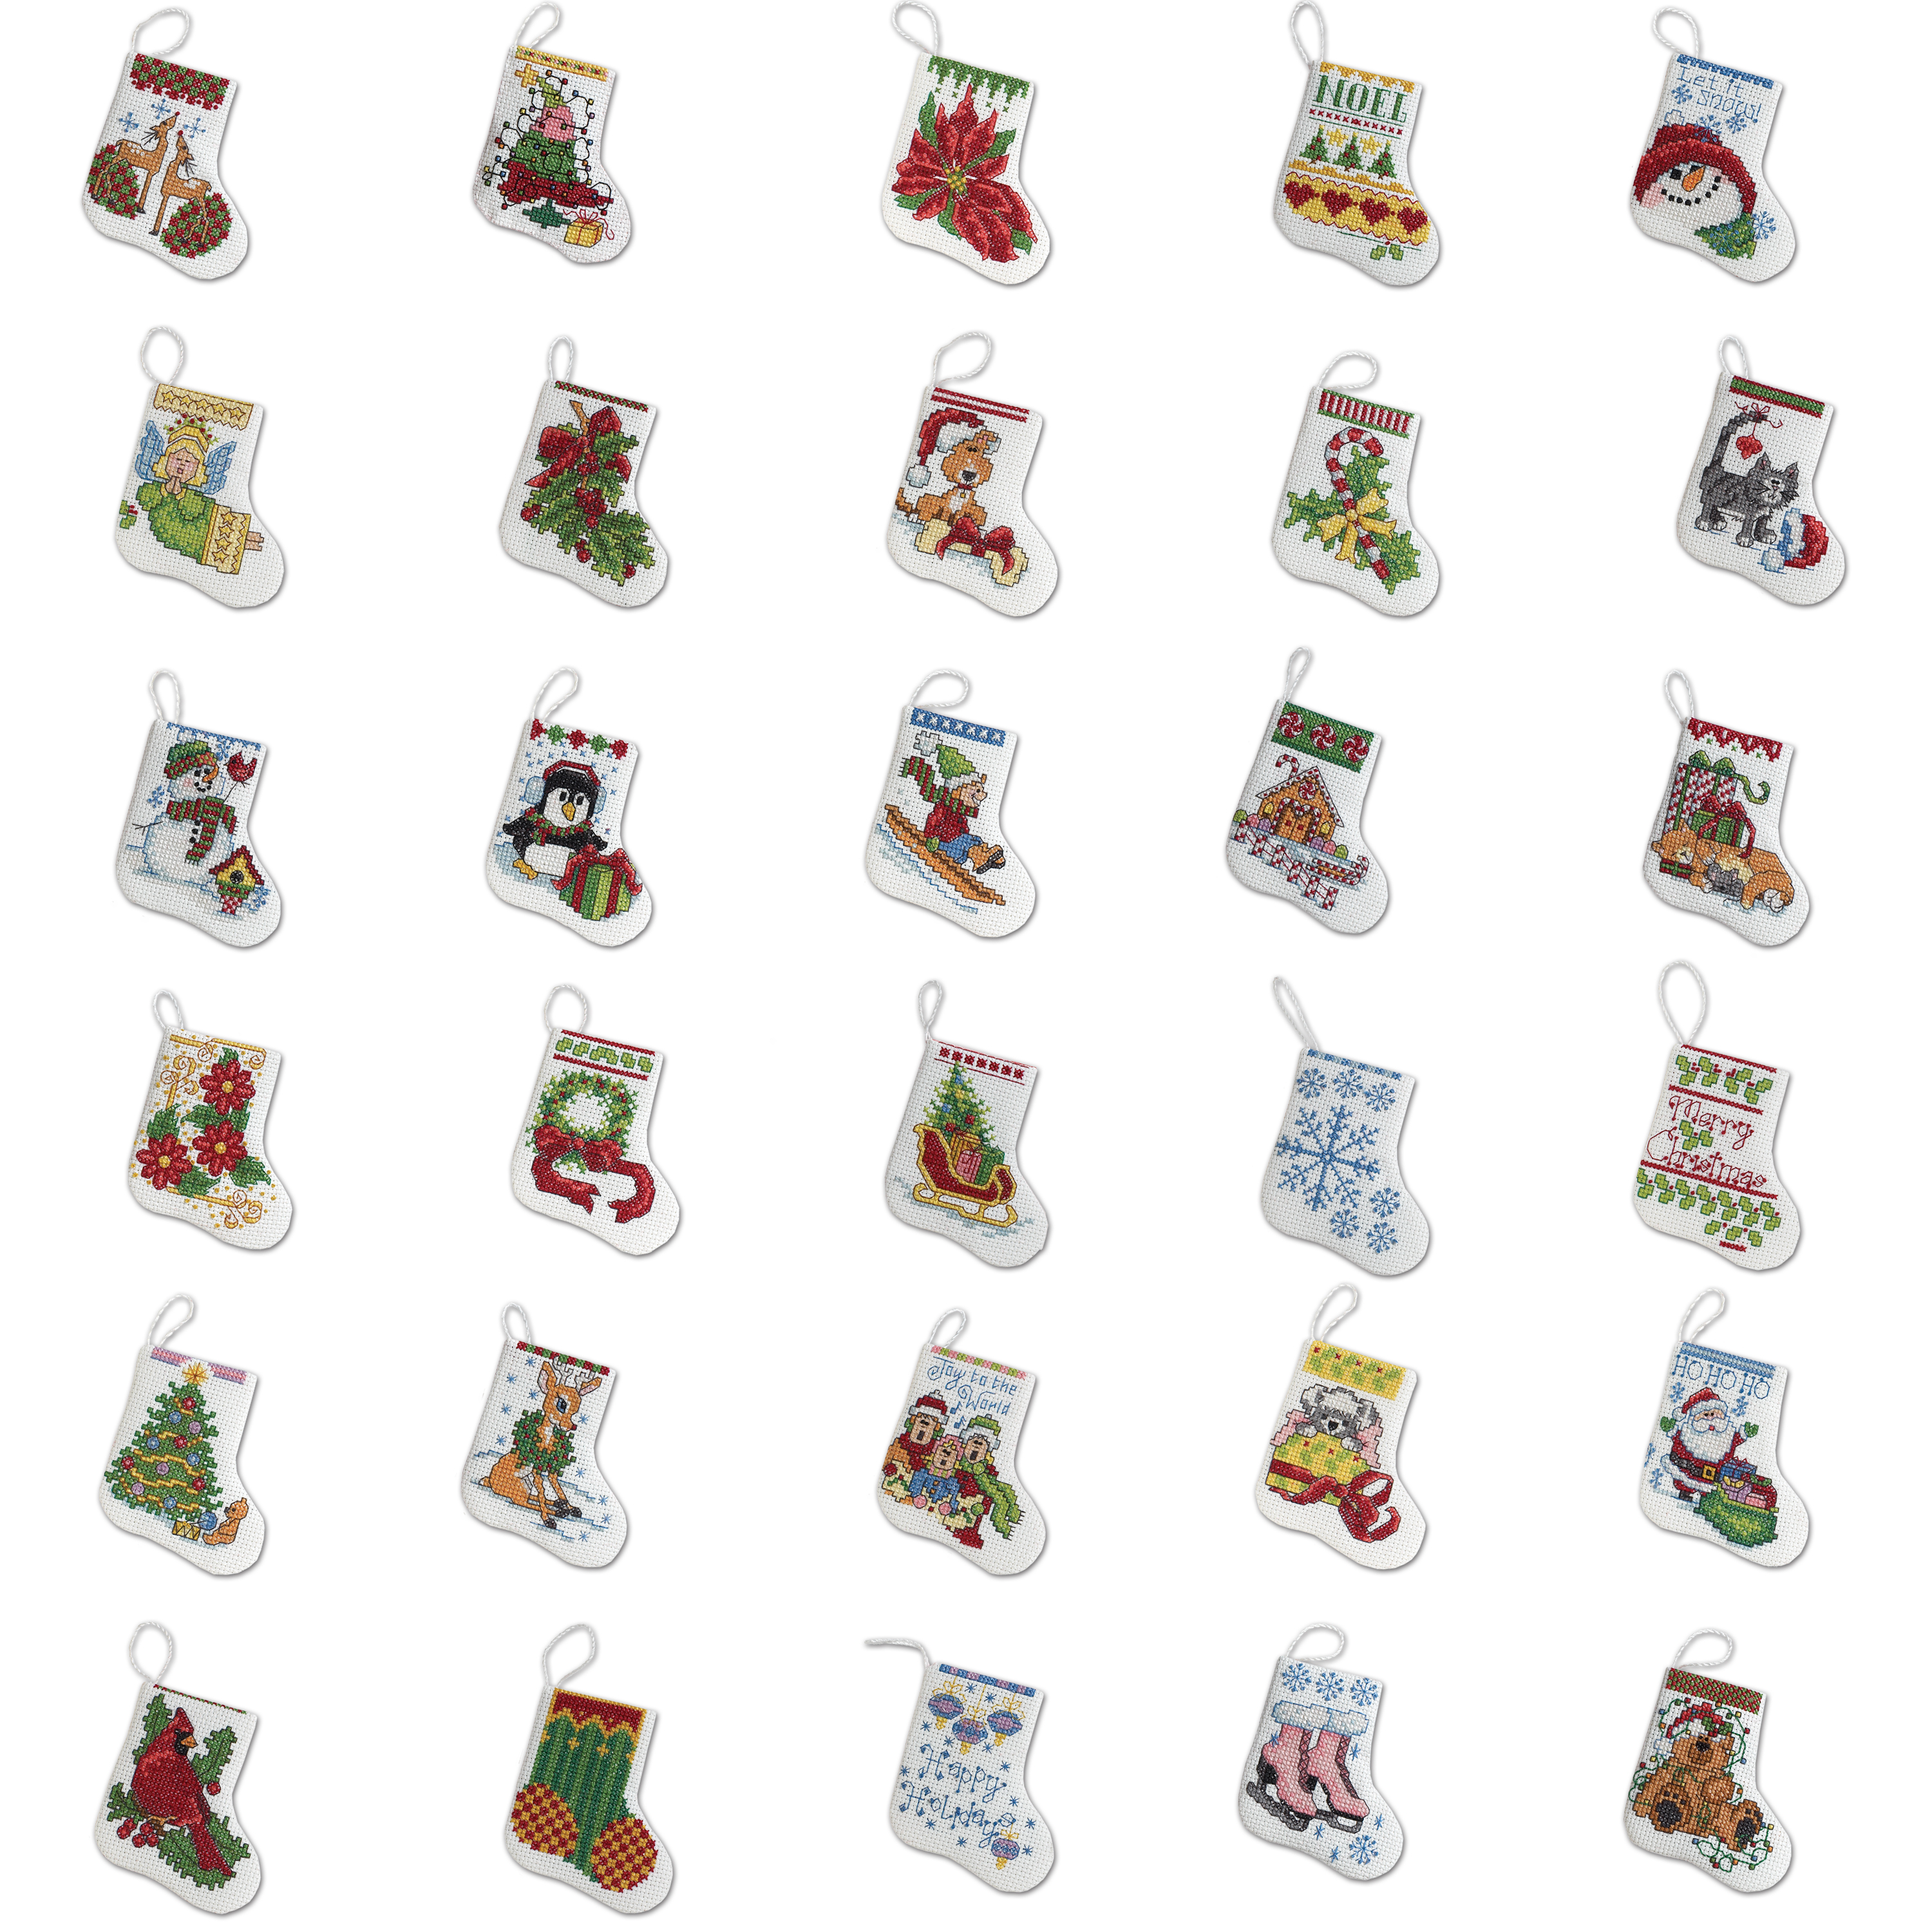 "Bucilla Counted Cross Stitch Ornament Kit by Plaid, More Tiny Stockings, Set of 30,   each approx. 2��"" x 3"""